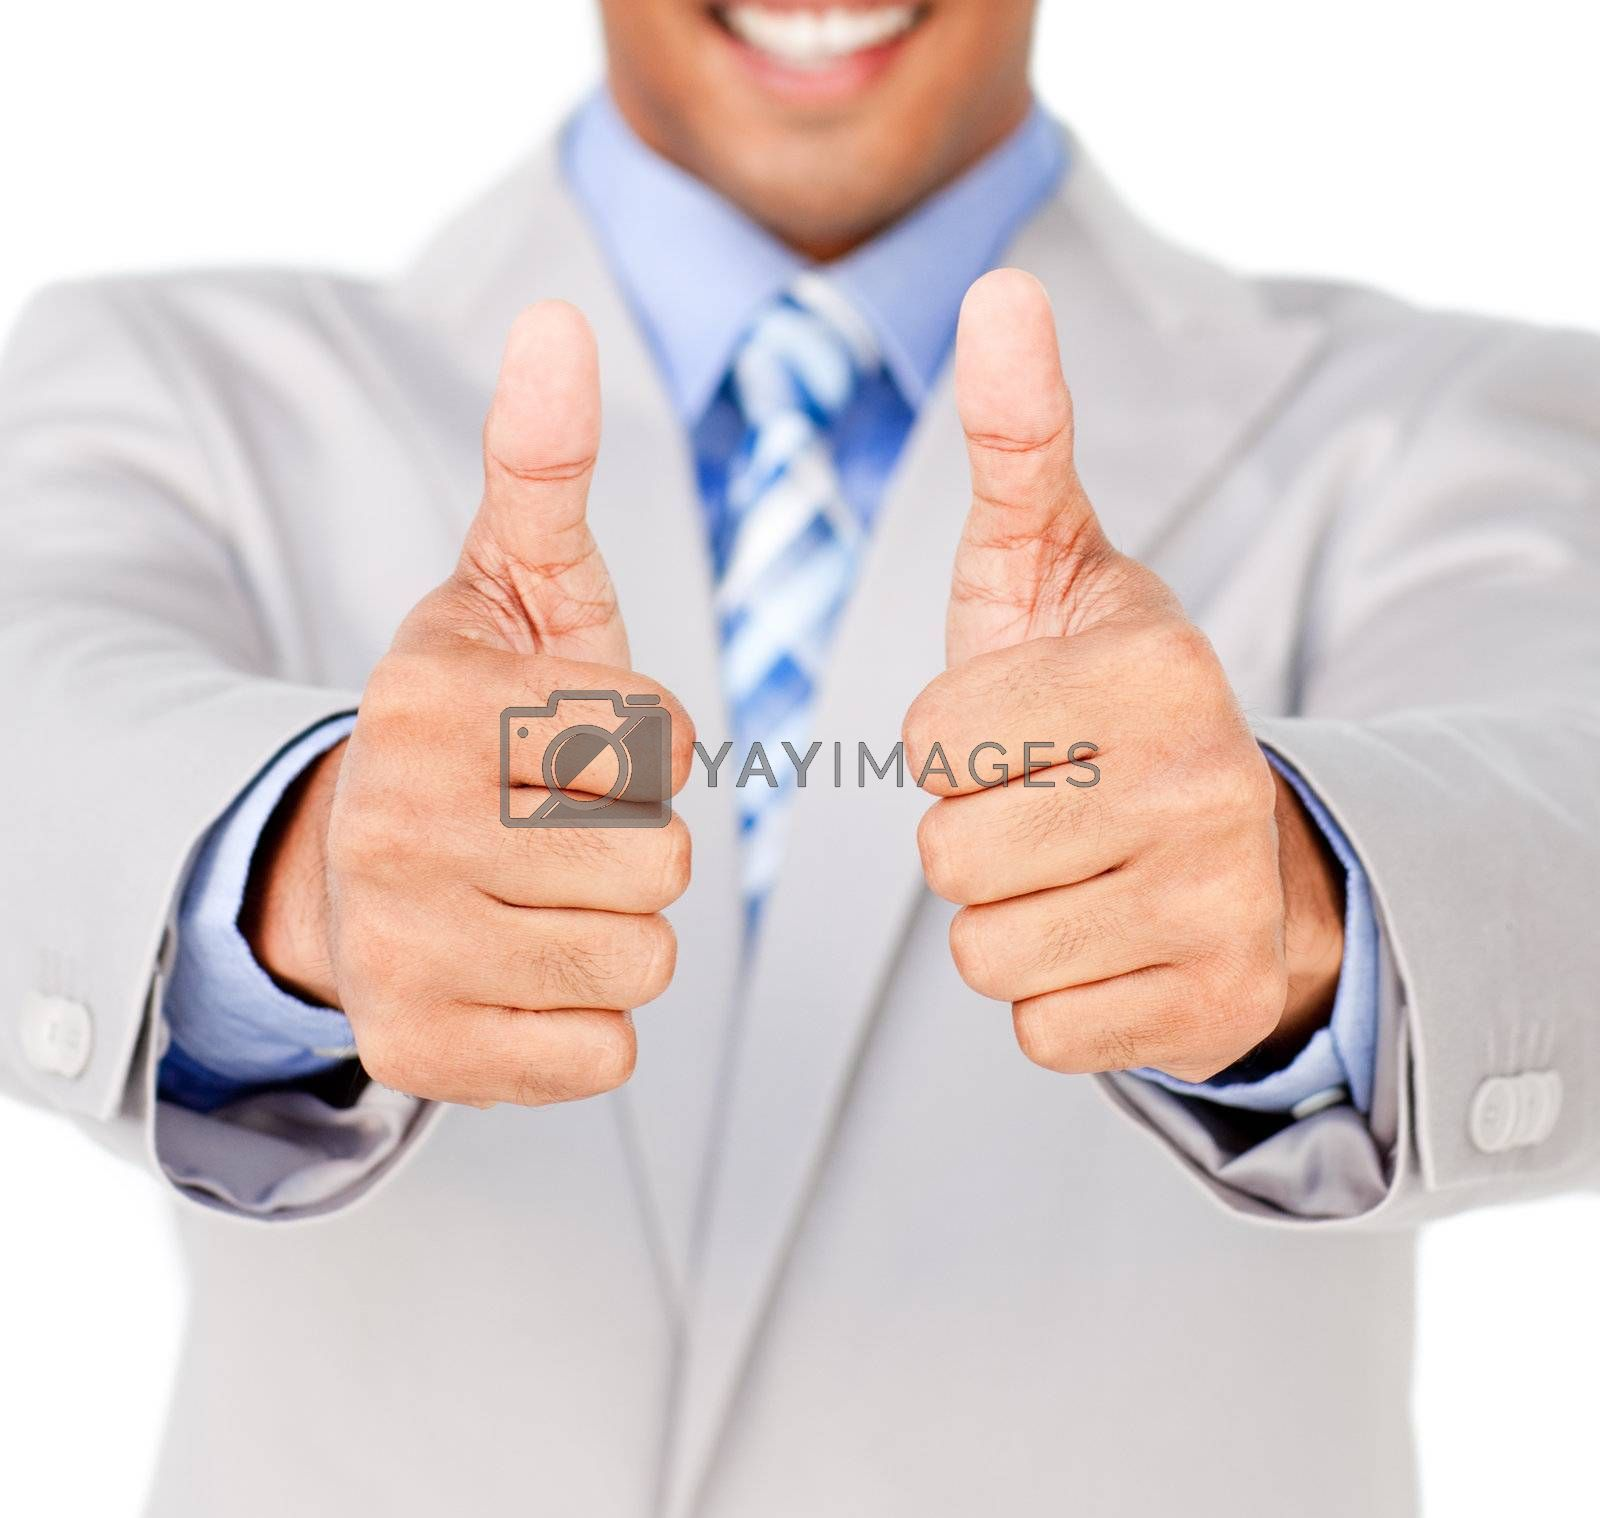 Close-up of a businessman with thumbs up in celebration isolated on a white background